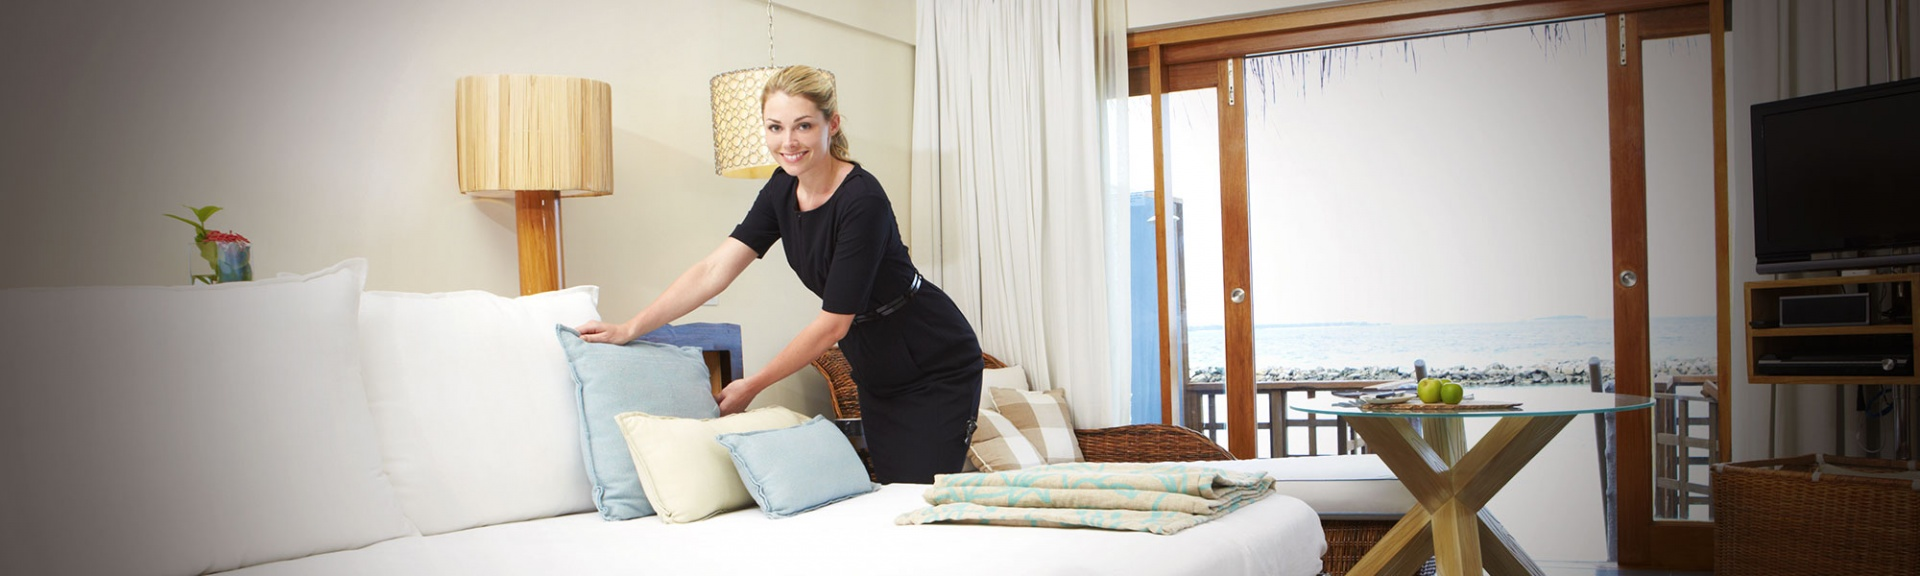 Housekeeping-manager.jpg